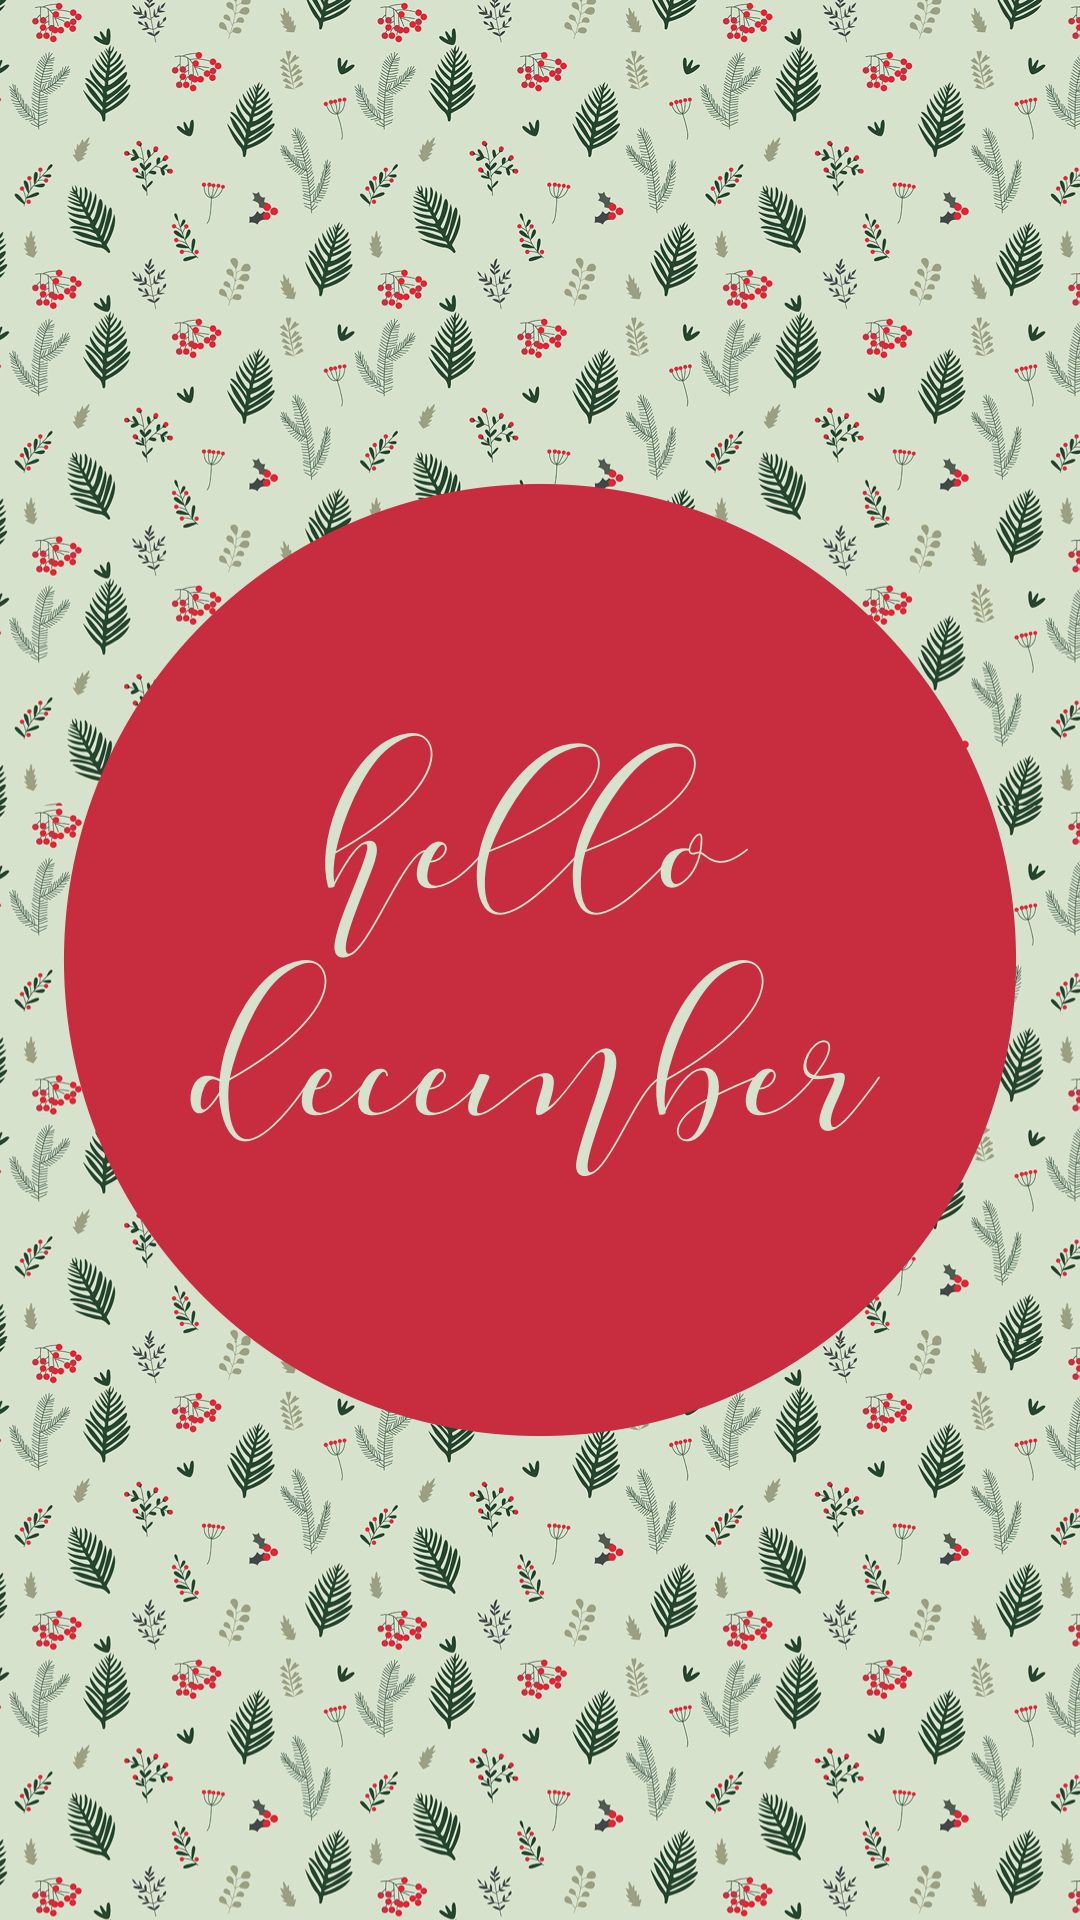 hello december ✨ #hellodecemberwallpaper #wallpapers #background #design #graphicdesign #katiekelleyphotos #hellodecemberwallpaper hello december ✨ #hellodecemberwallpaper #wallpapers #background #design #graphicdesign #katiekelleyphotos #hellodecemberwallpaper